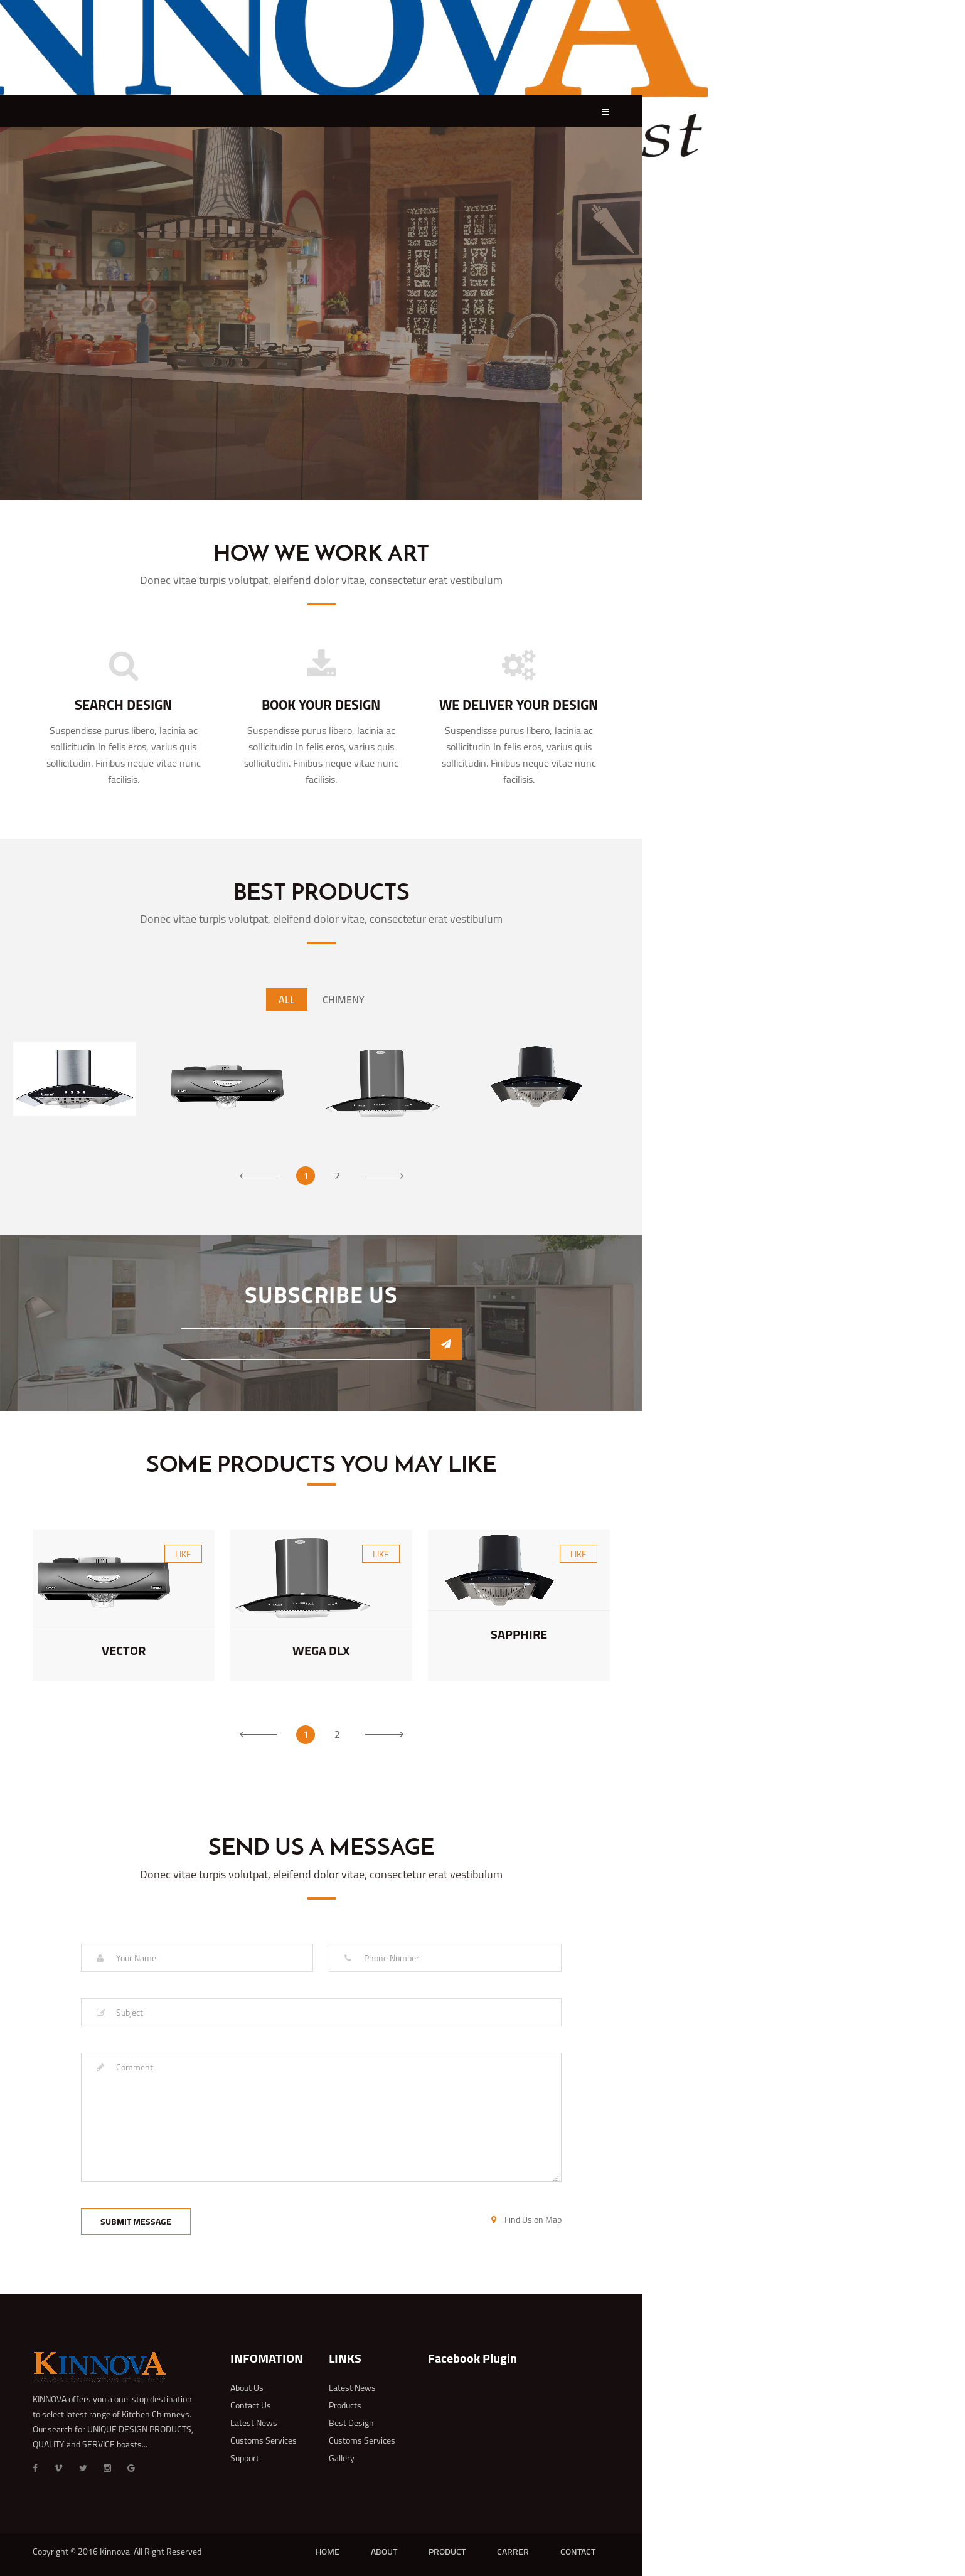 Kinnova Kitchen Chimney Competitors, Revenue and Employees - Owler ...